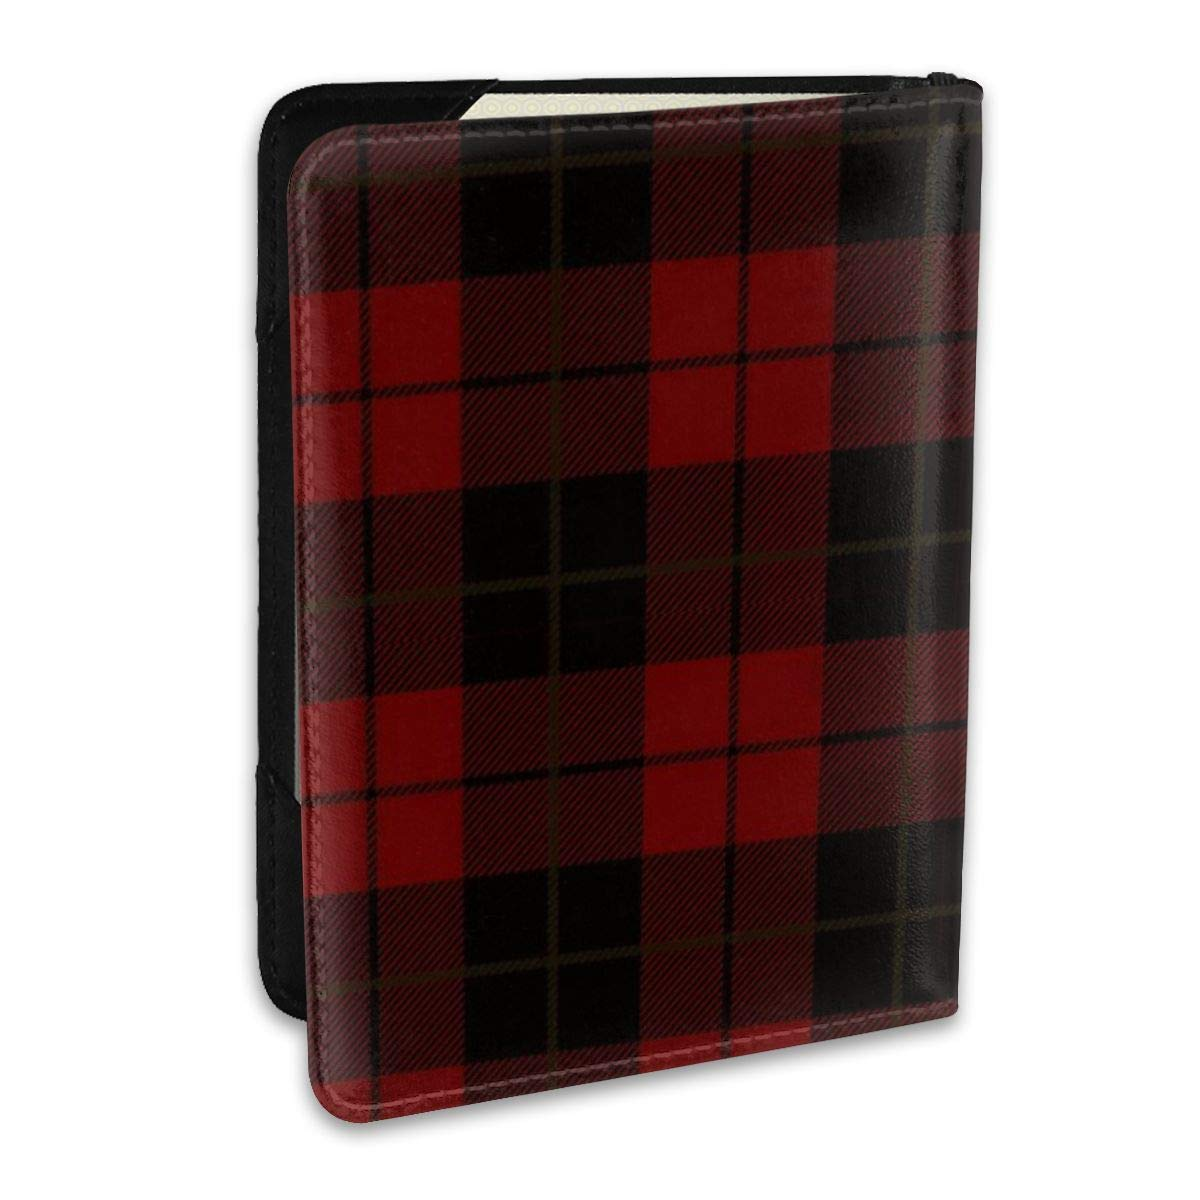 Black Red Tartan Fashion Leather Passport Holder Cover Case Travel Wallet 6.5 In